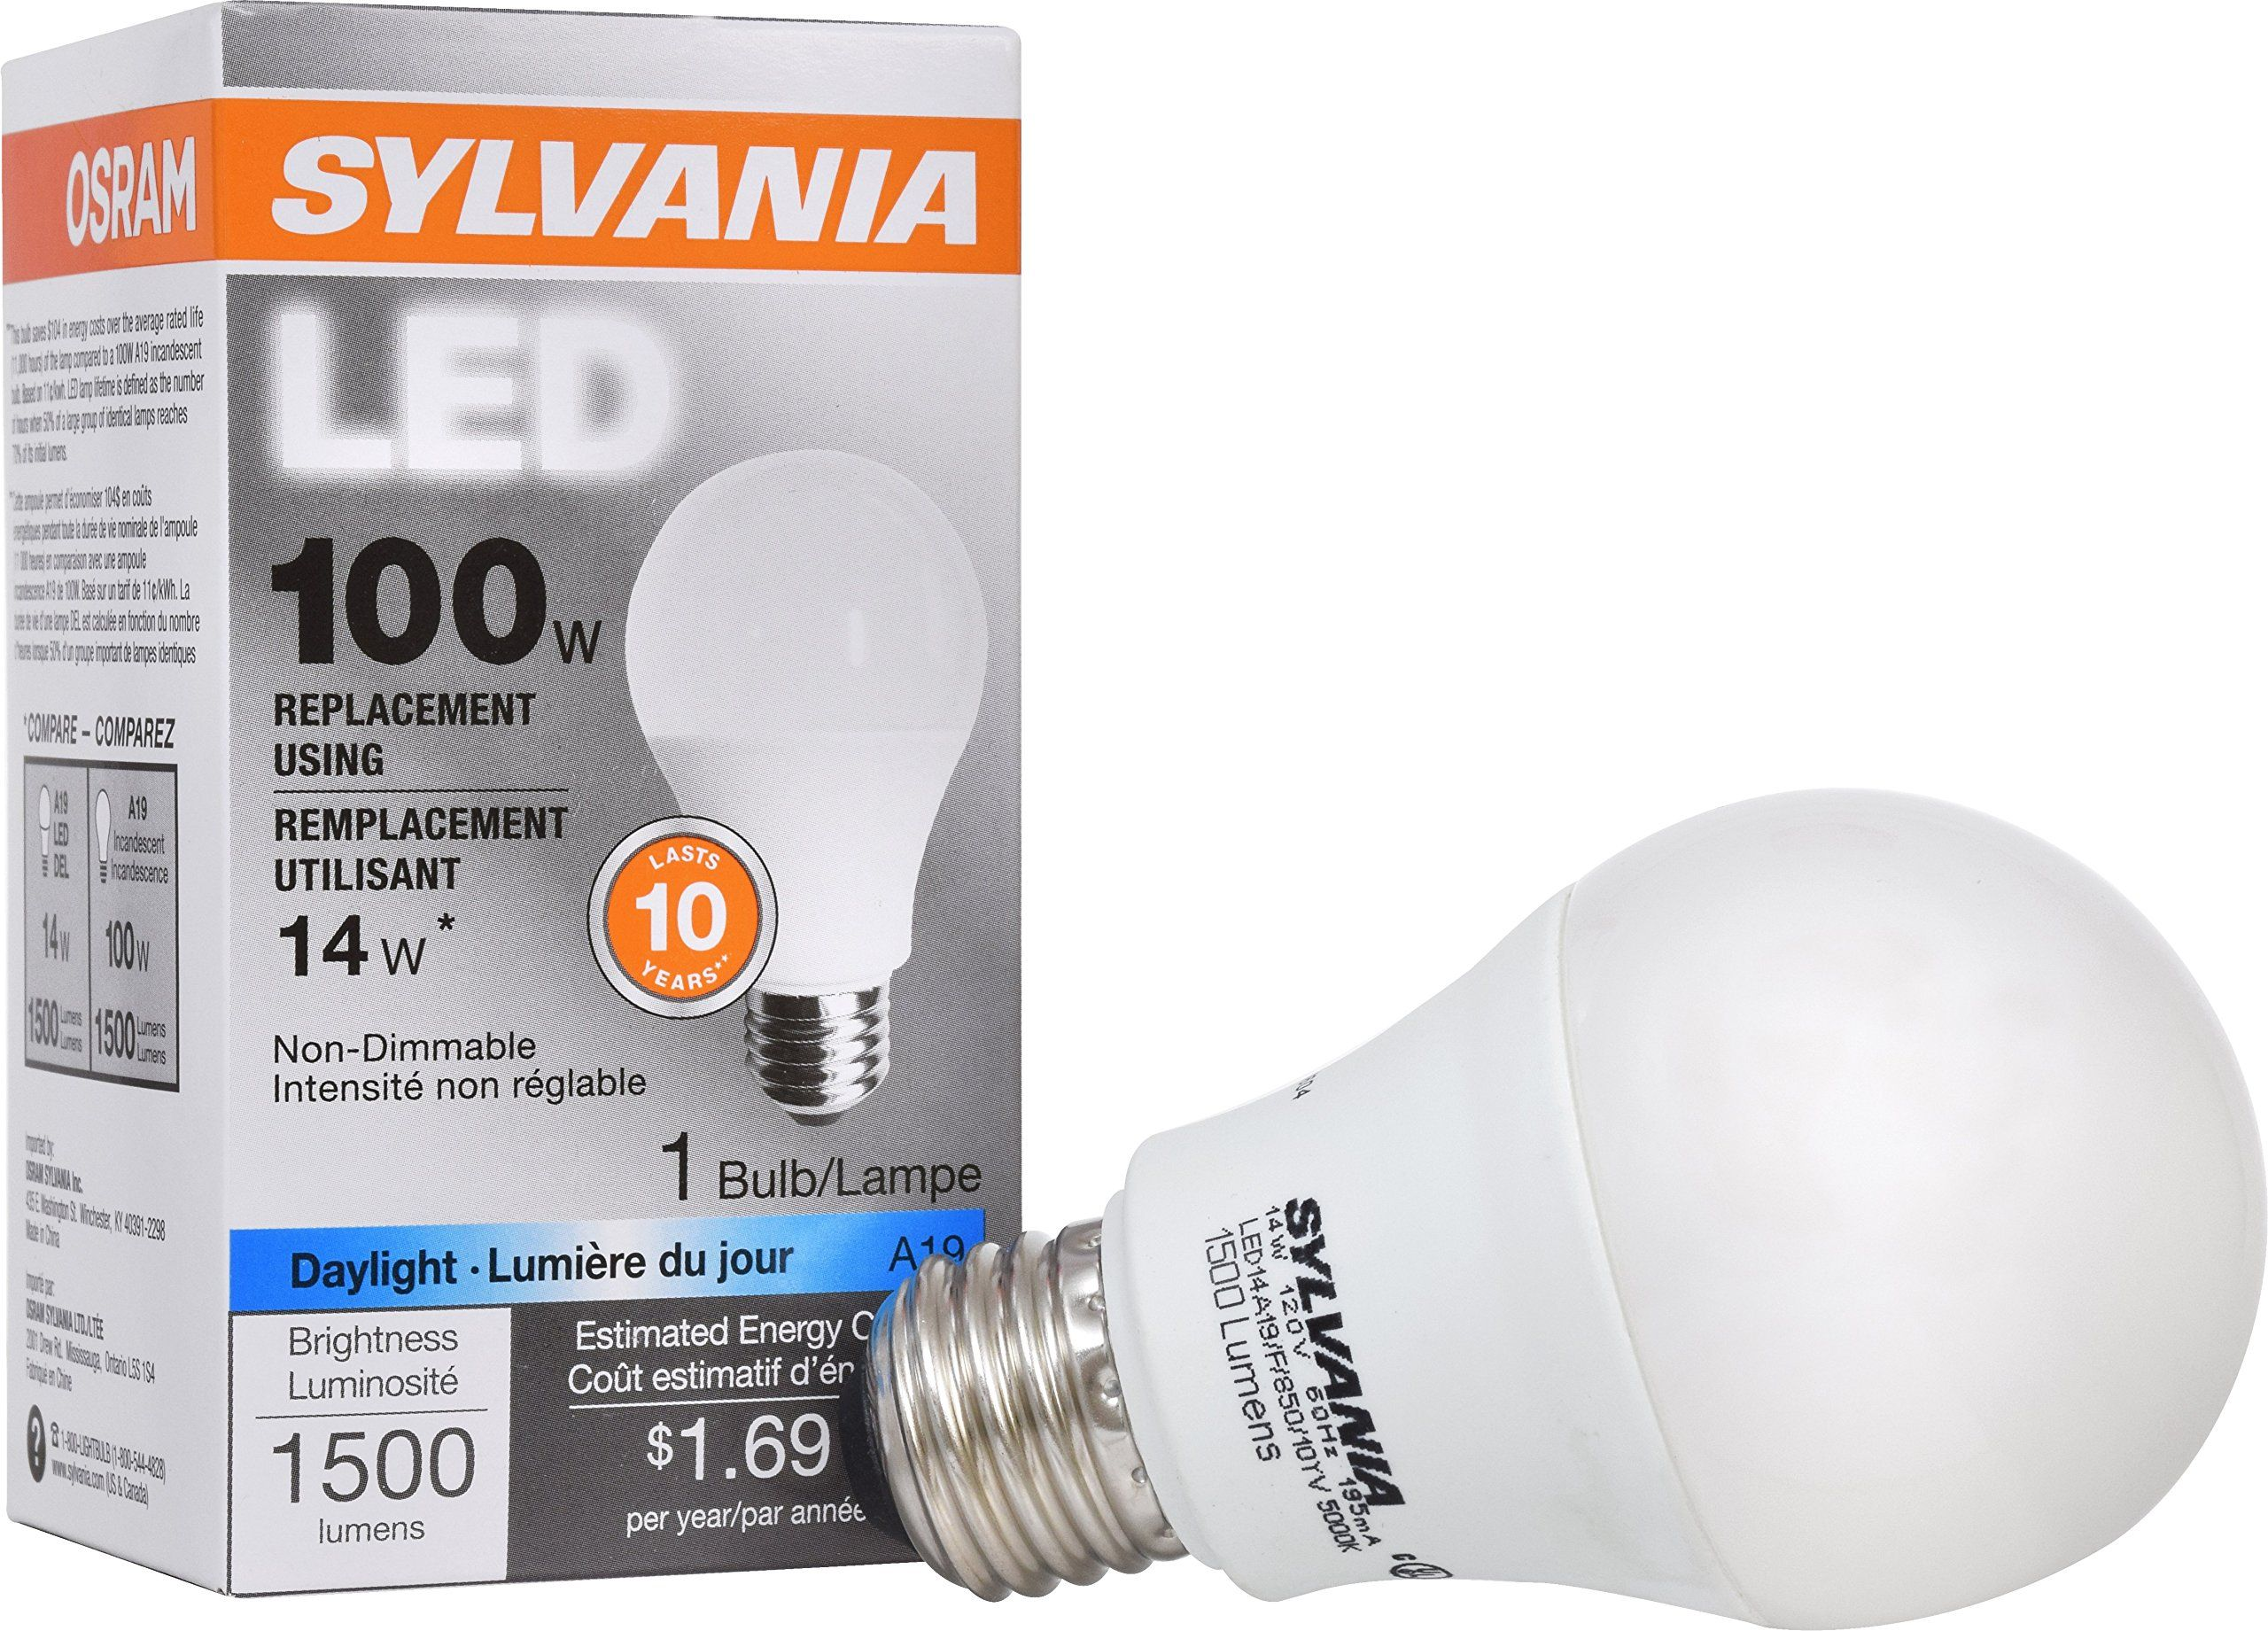 Sylvania 100w Equivalent Led Light Bulb A19 Lamp 1 Pack Daylight Energy Saving Ledlightsideas Dimmable Led Lights Sylvania Led Light Bulb